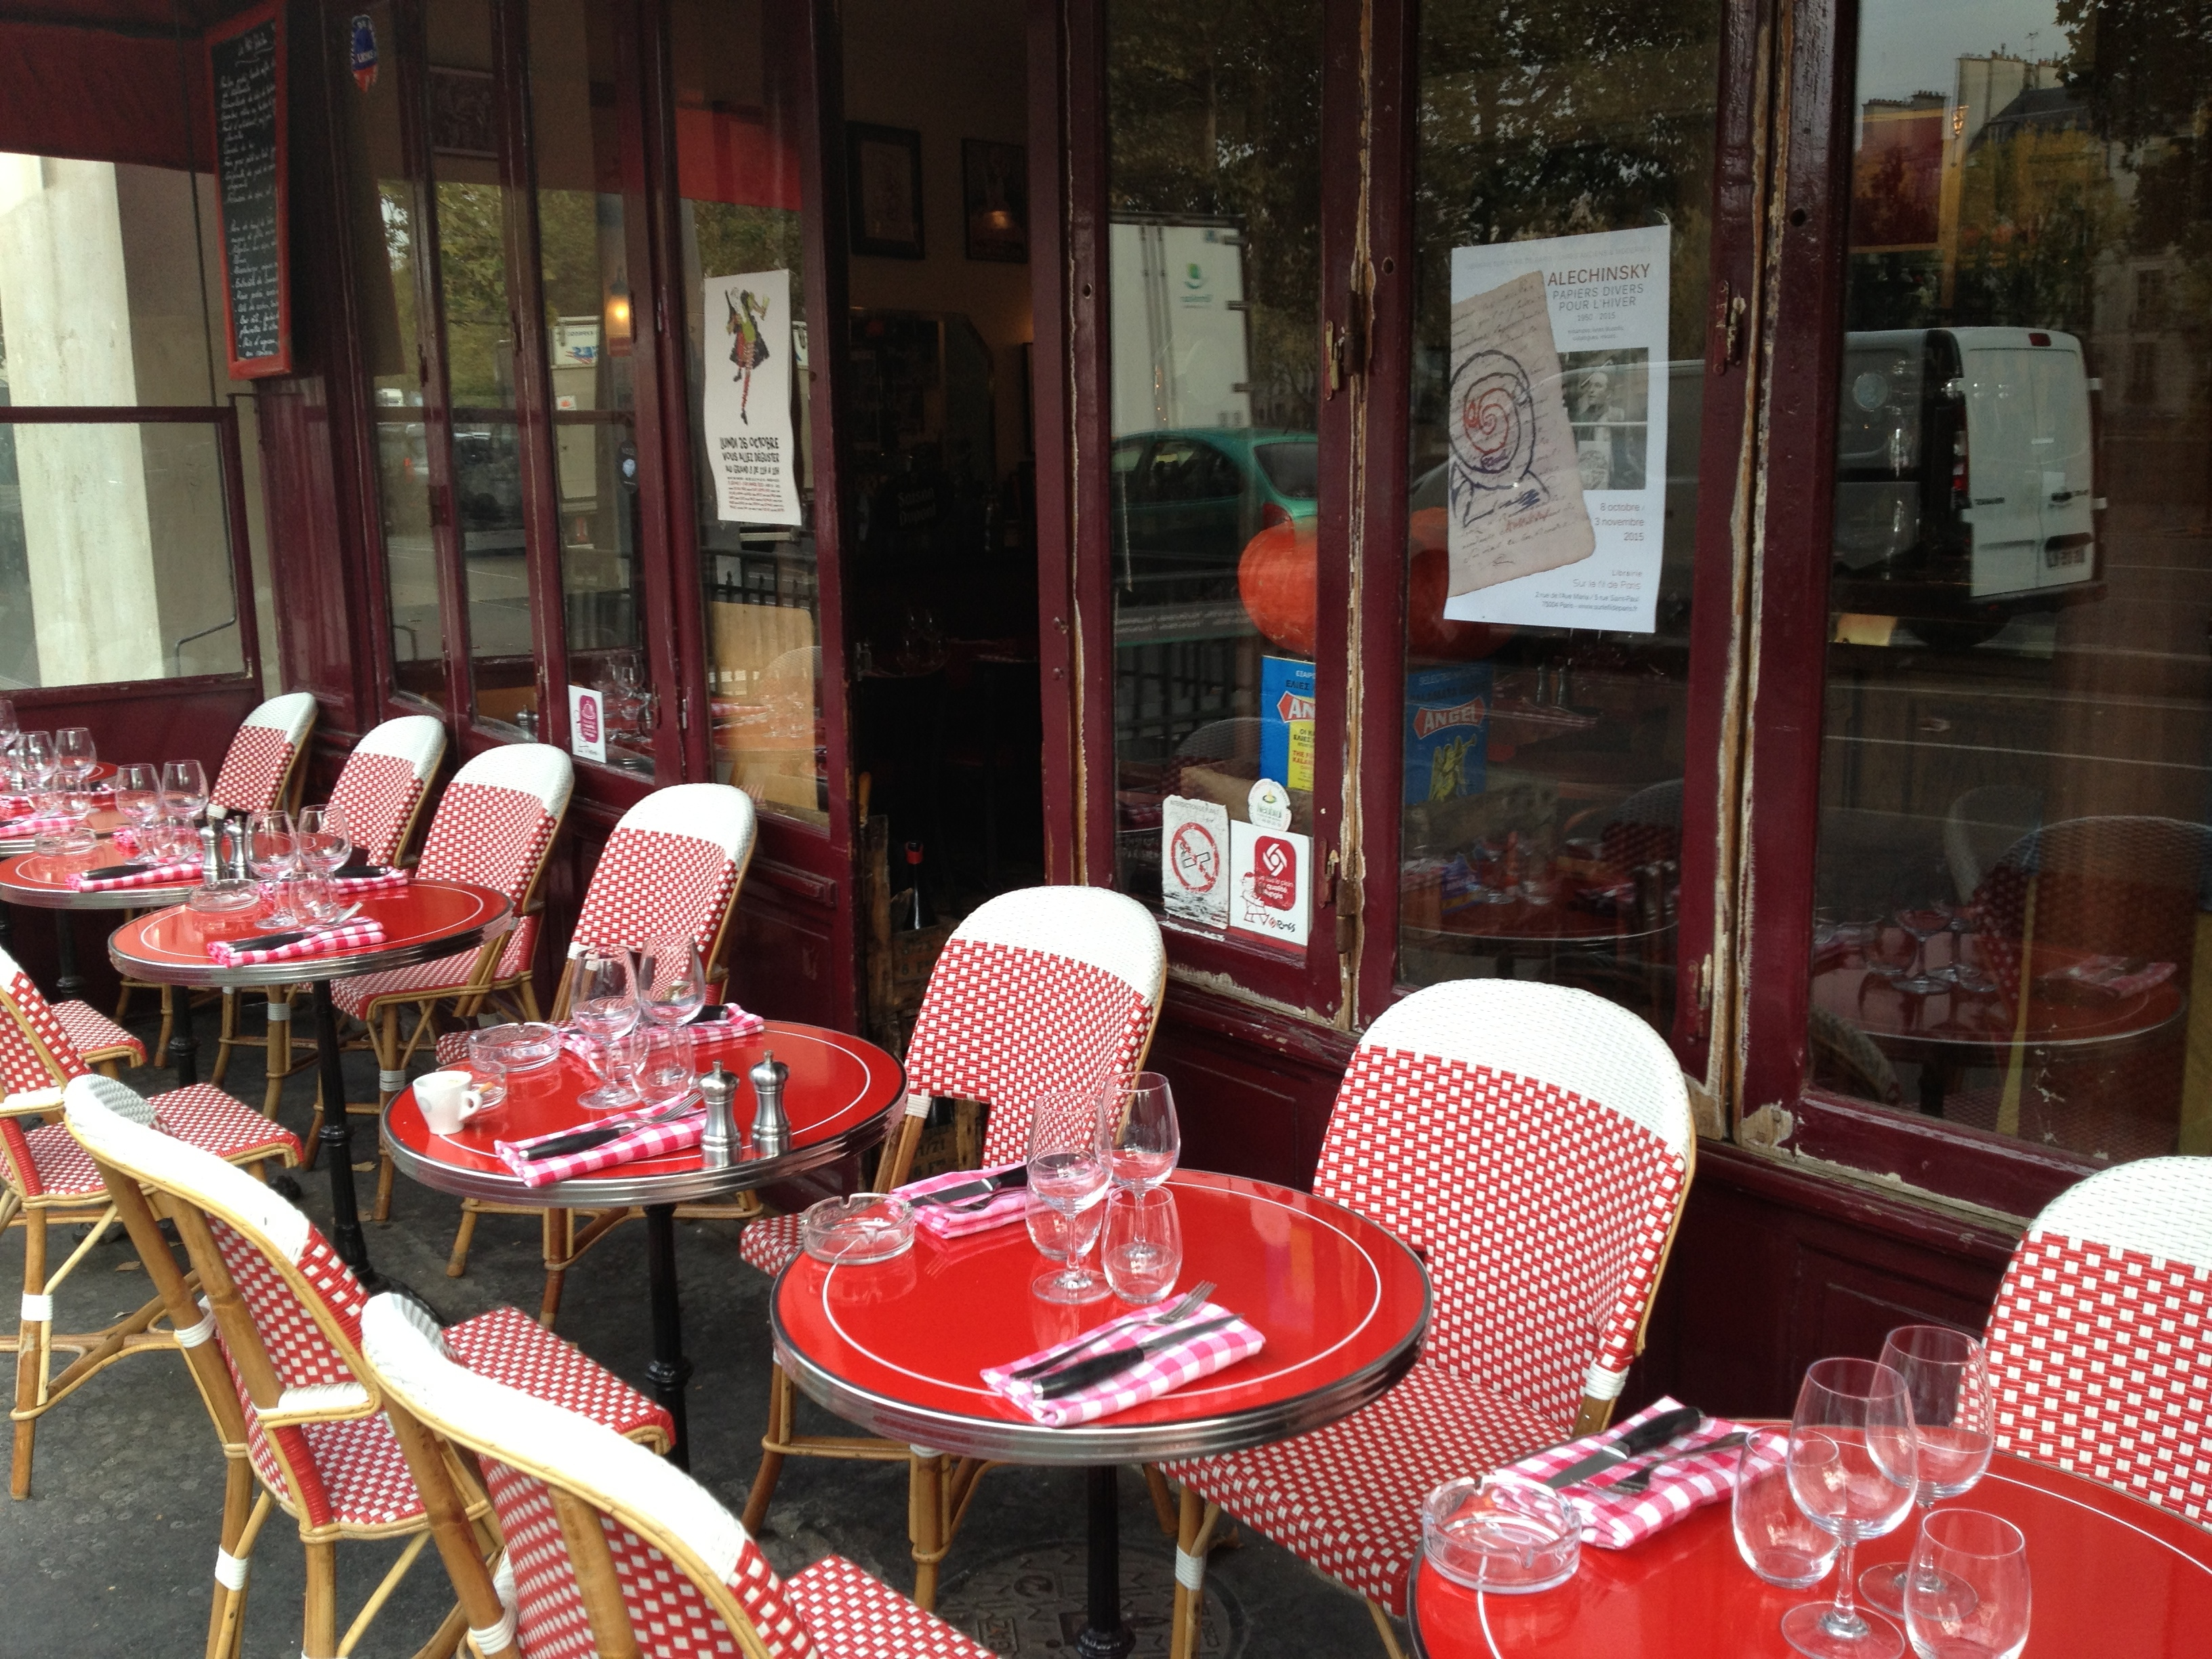 Paris Wine - Winebars